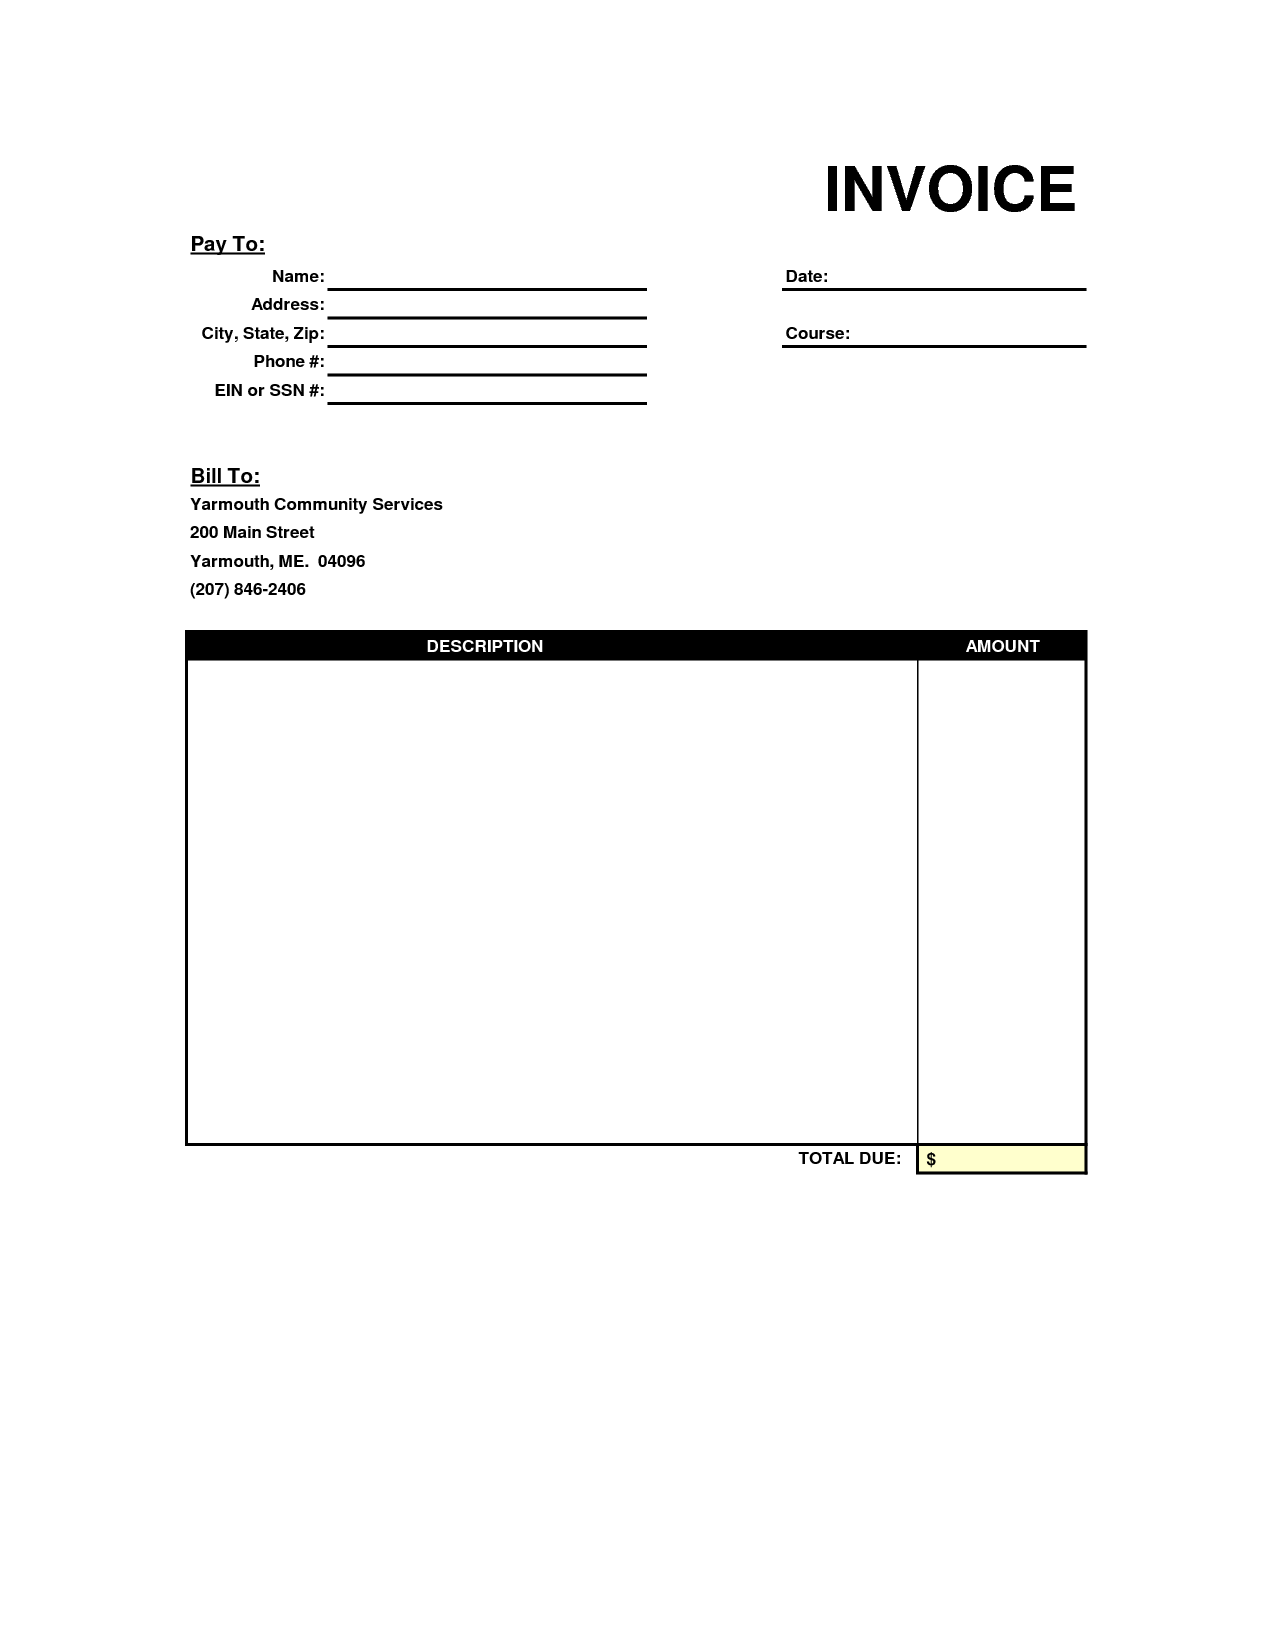 Company Invoice Template Excel and Personal Invoice Template Uk Invoice Example